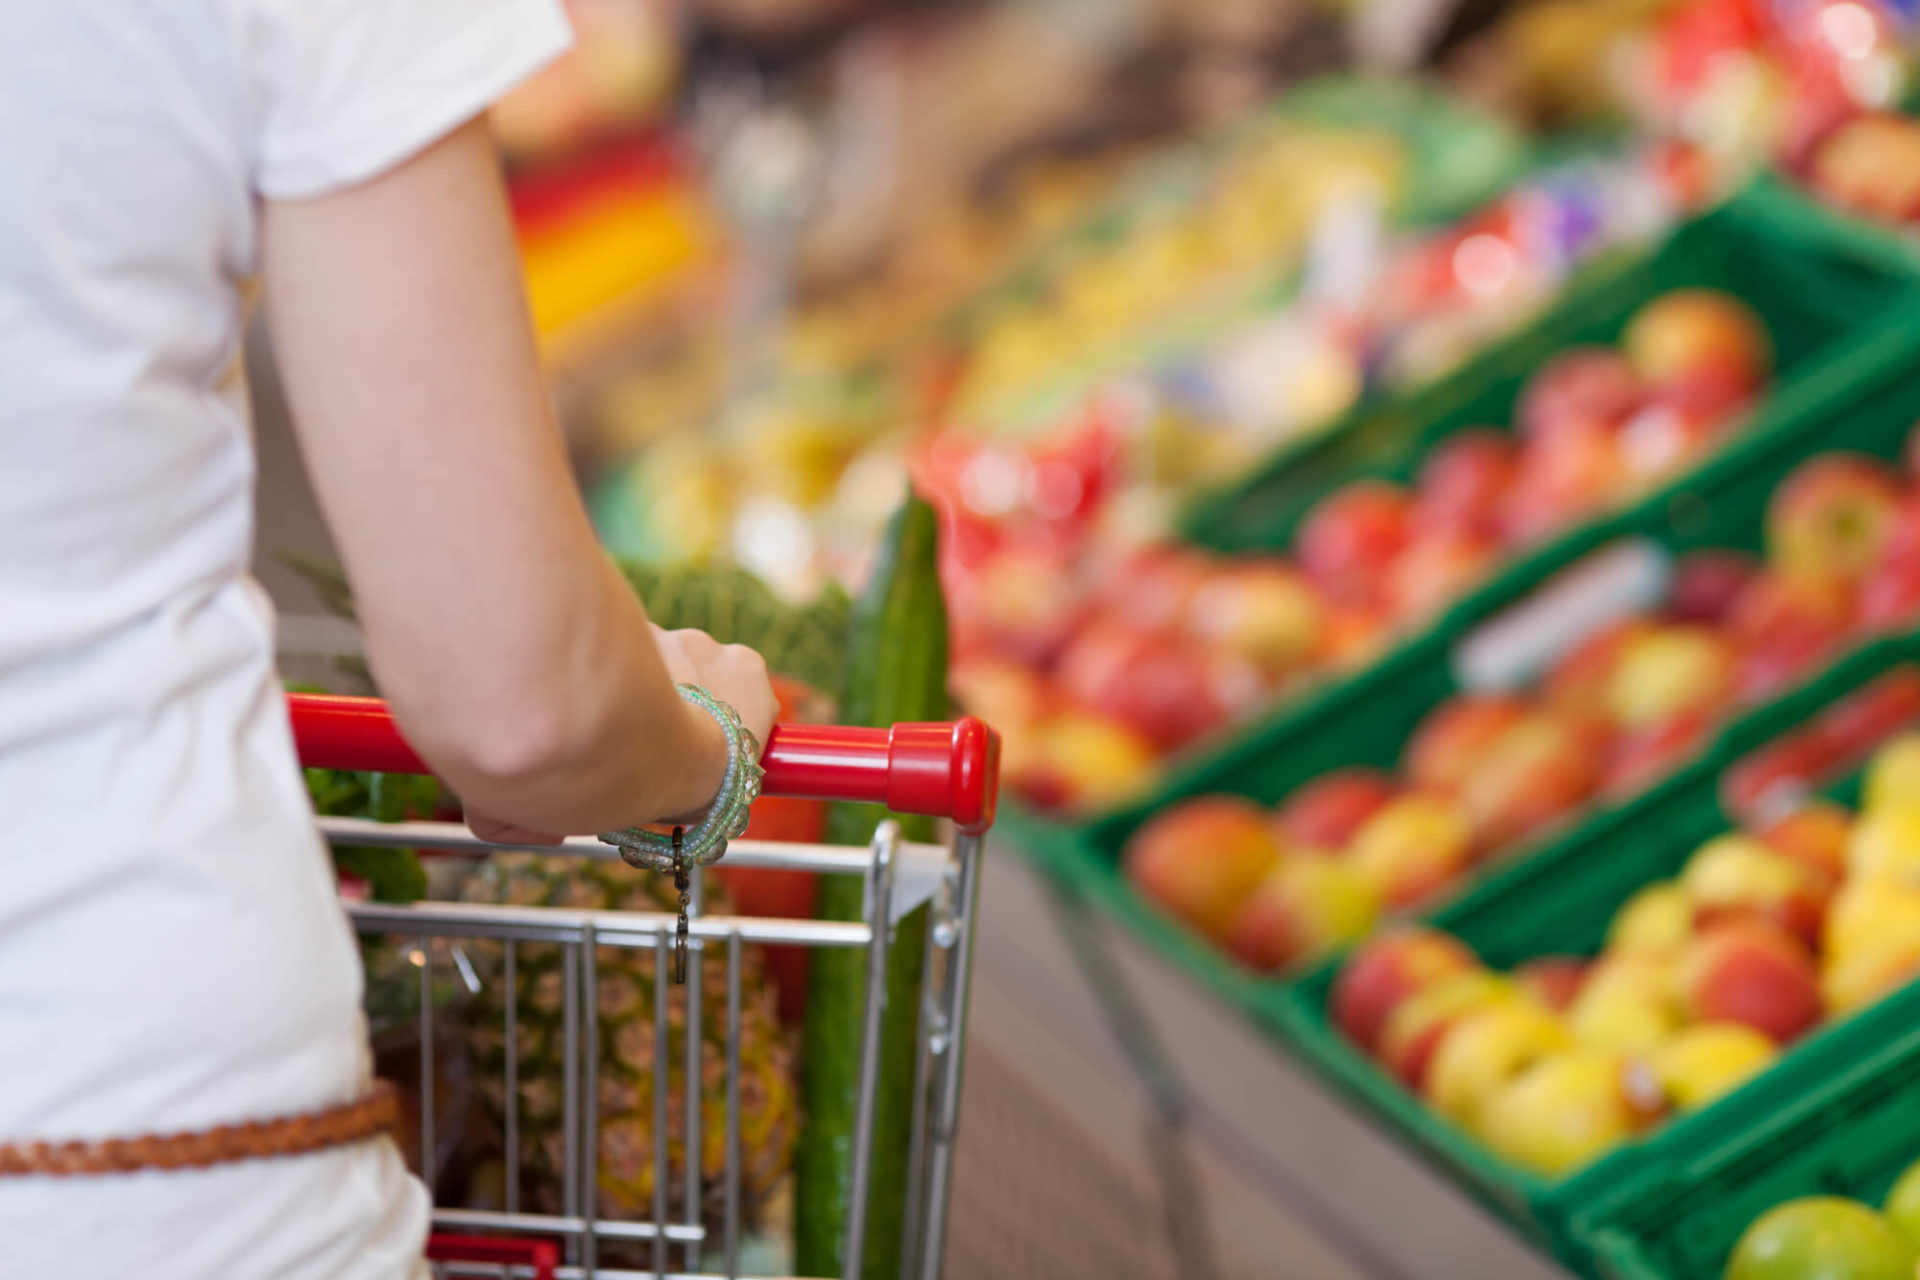 How to Shop the Produce Department on a Budget